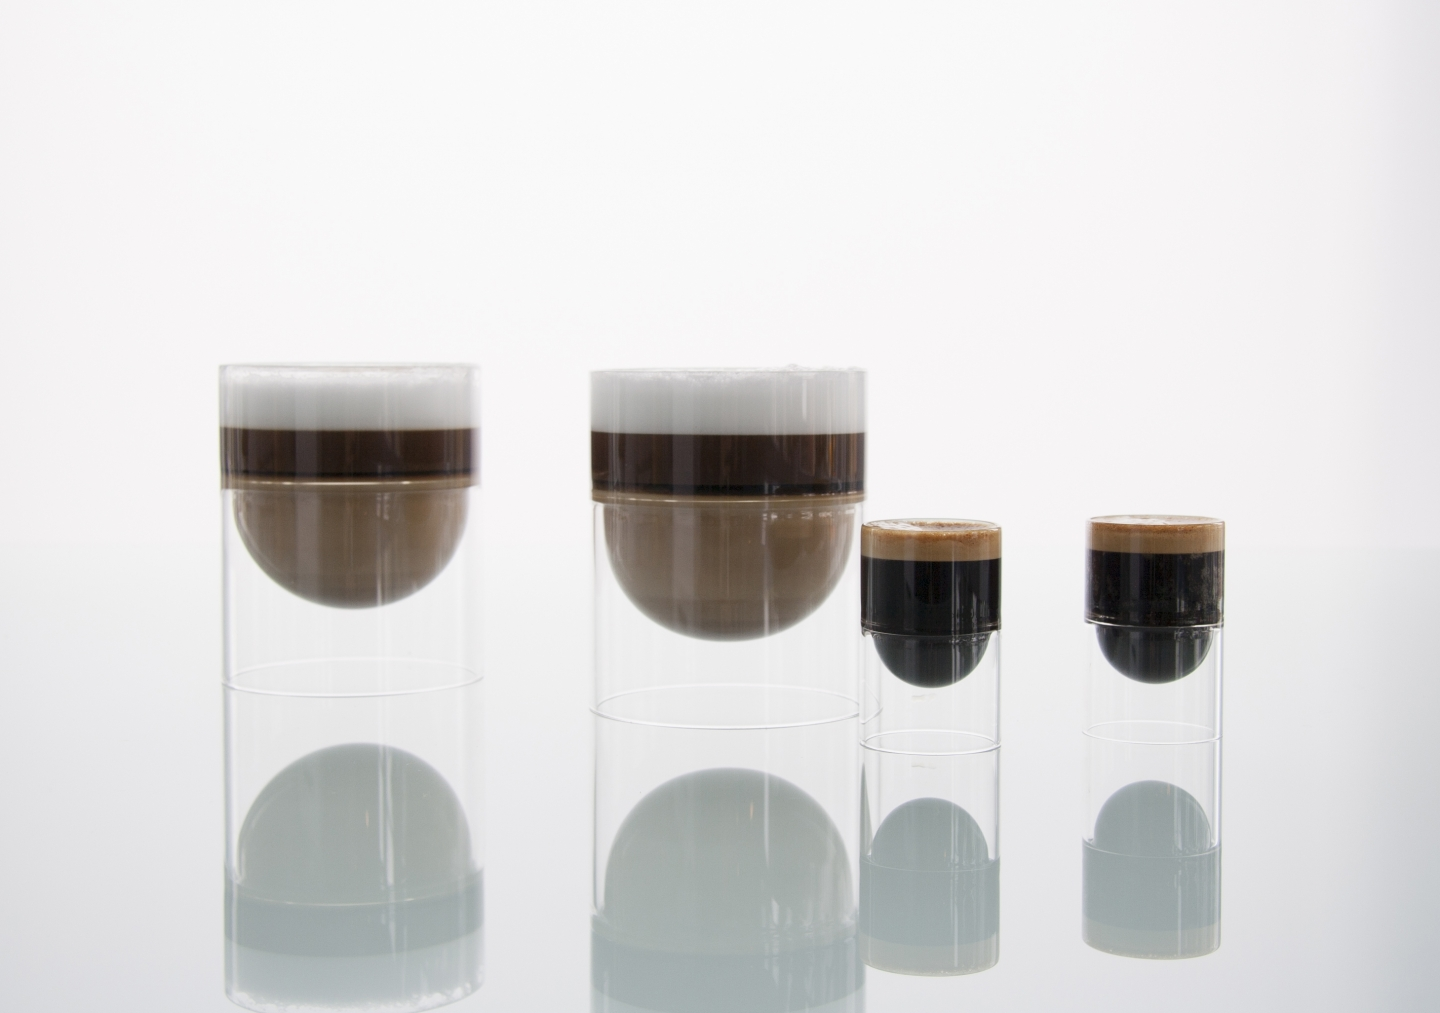 Using float for cappuccinos and espresso.